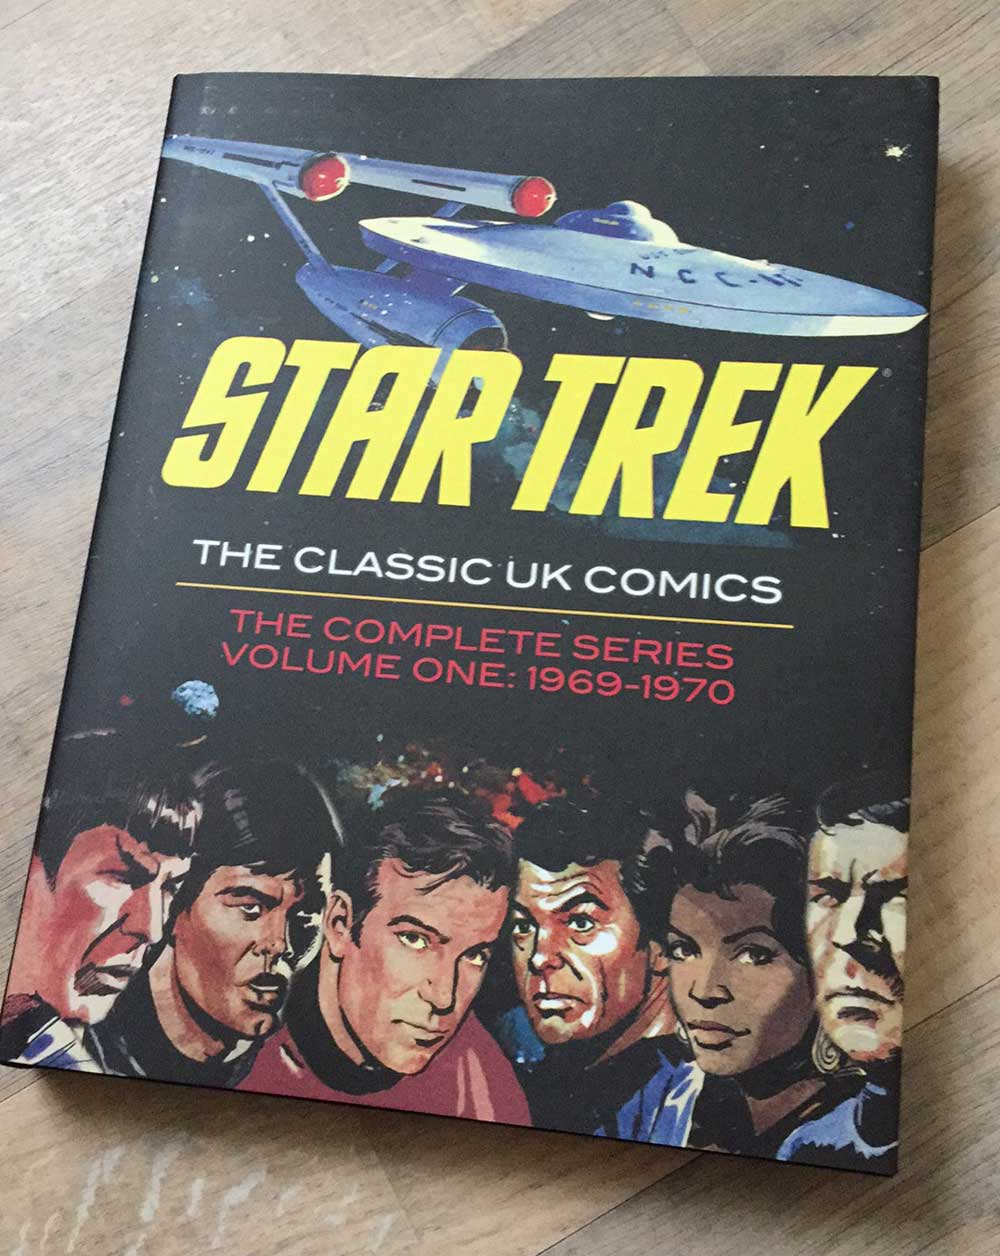 Star Trek - The Classic UK Comics